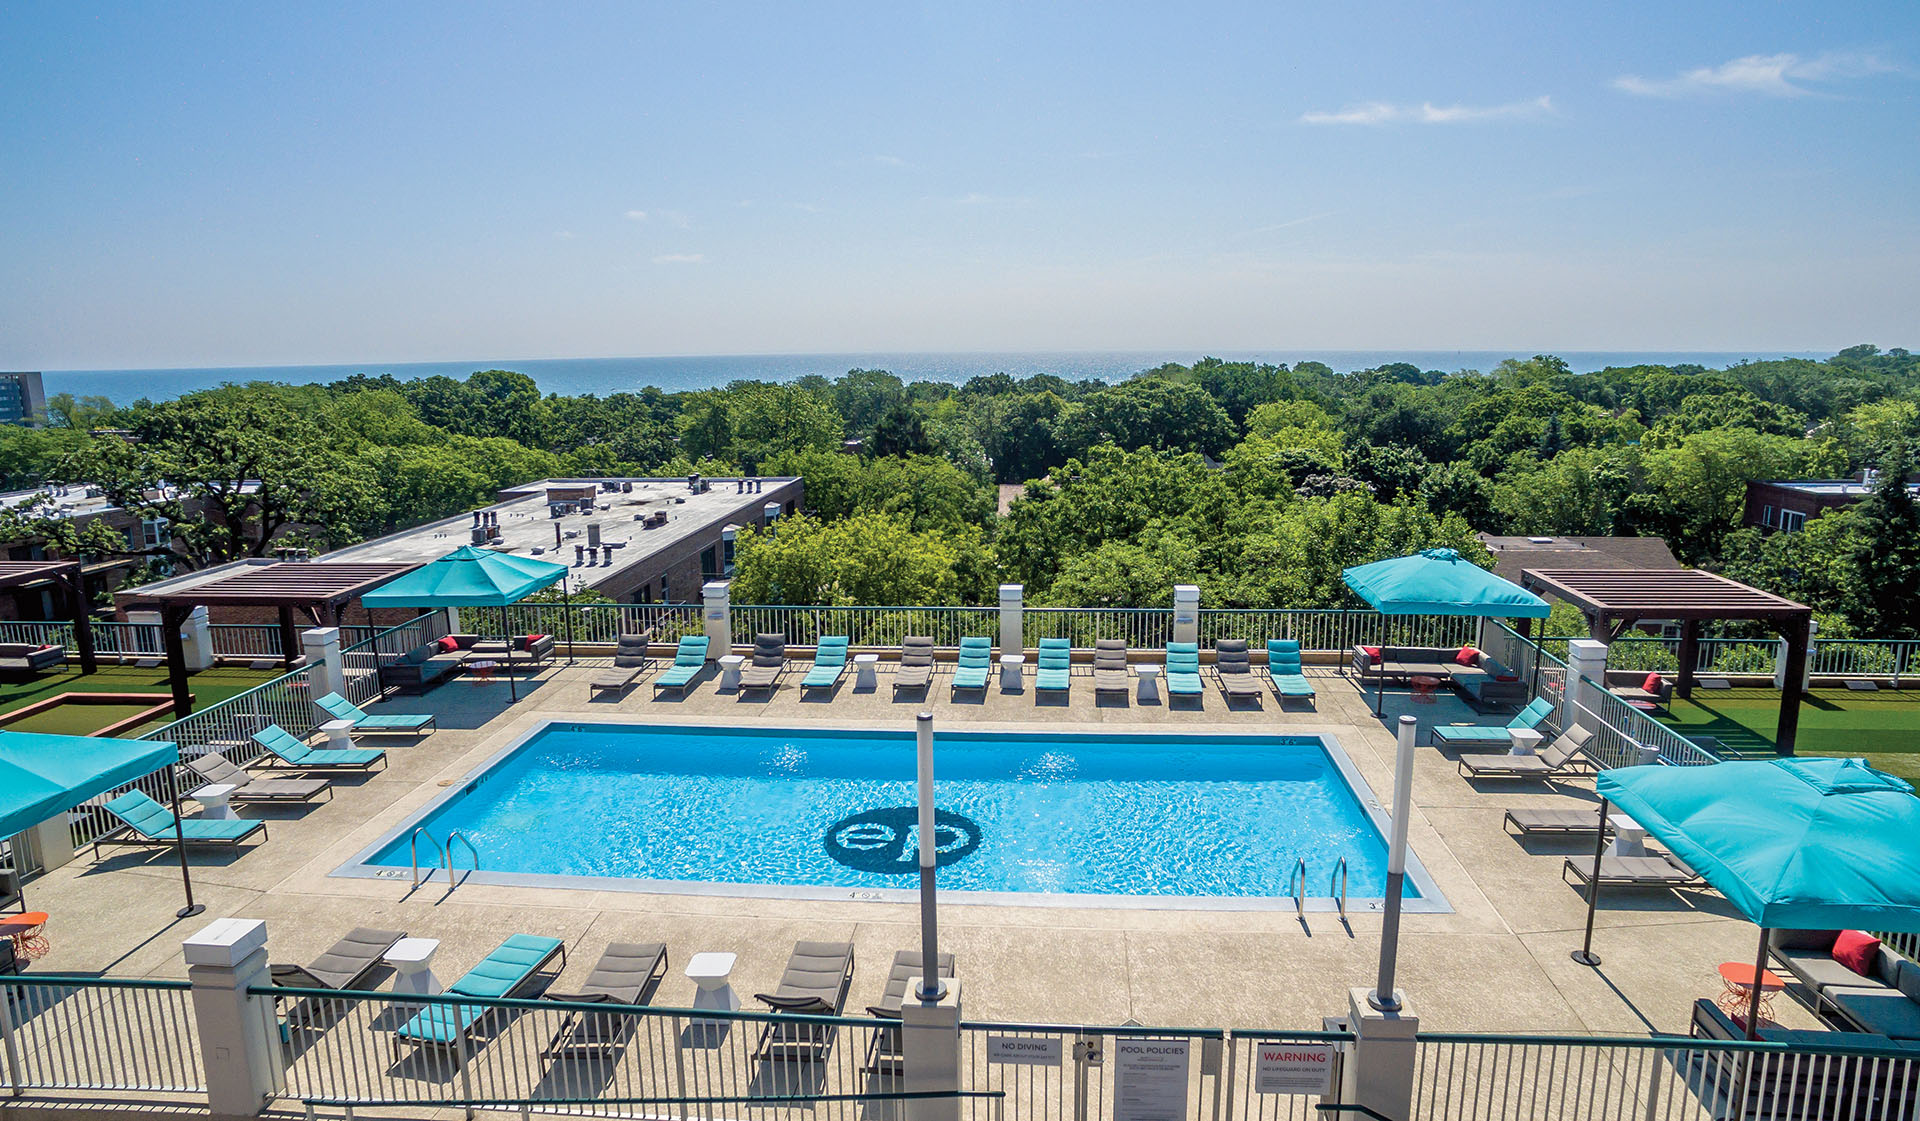 Evanston Place Apartments available in Evanston, IL - Pool